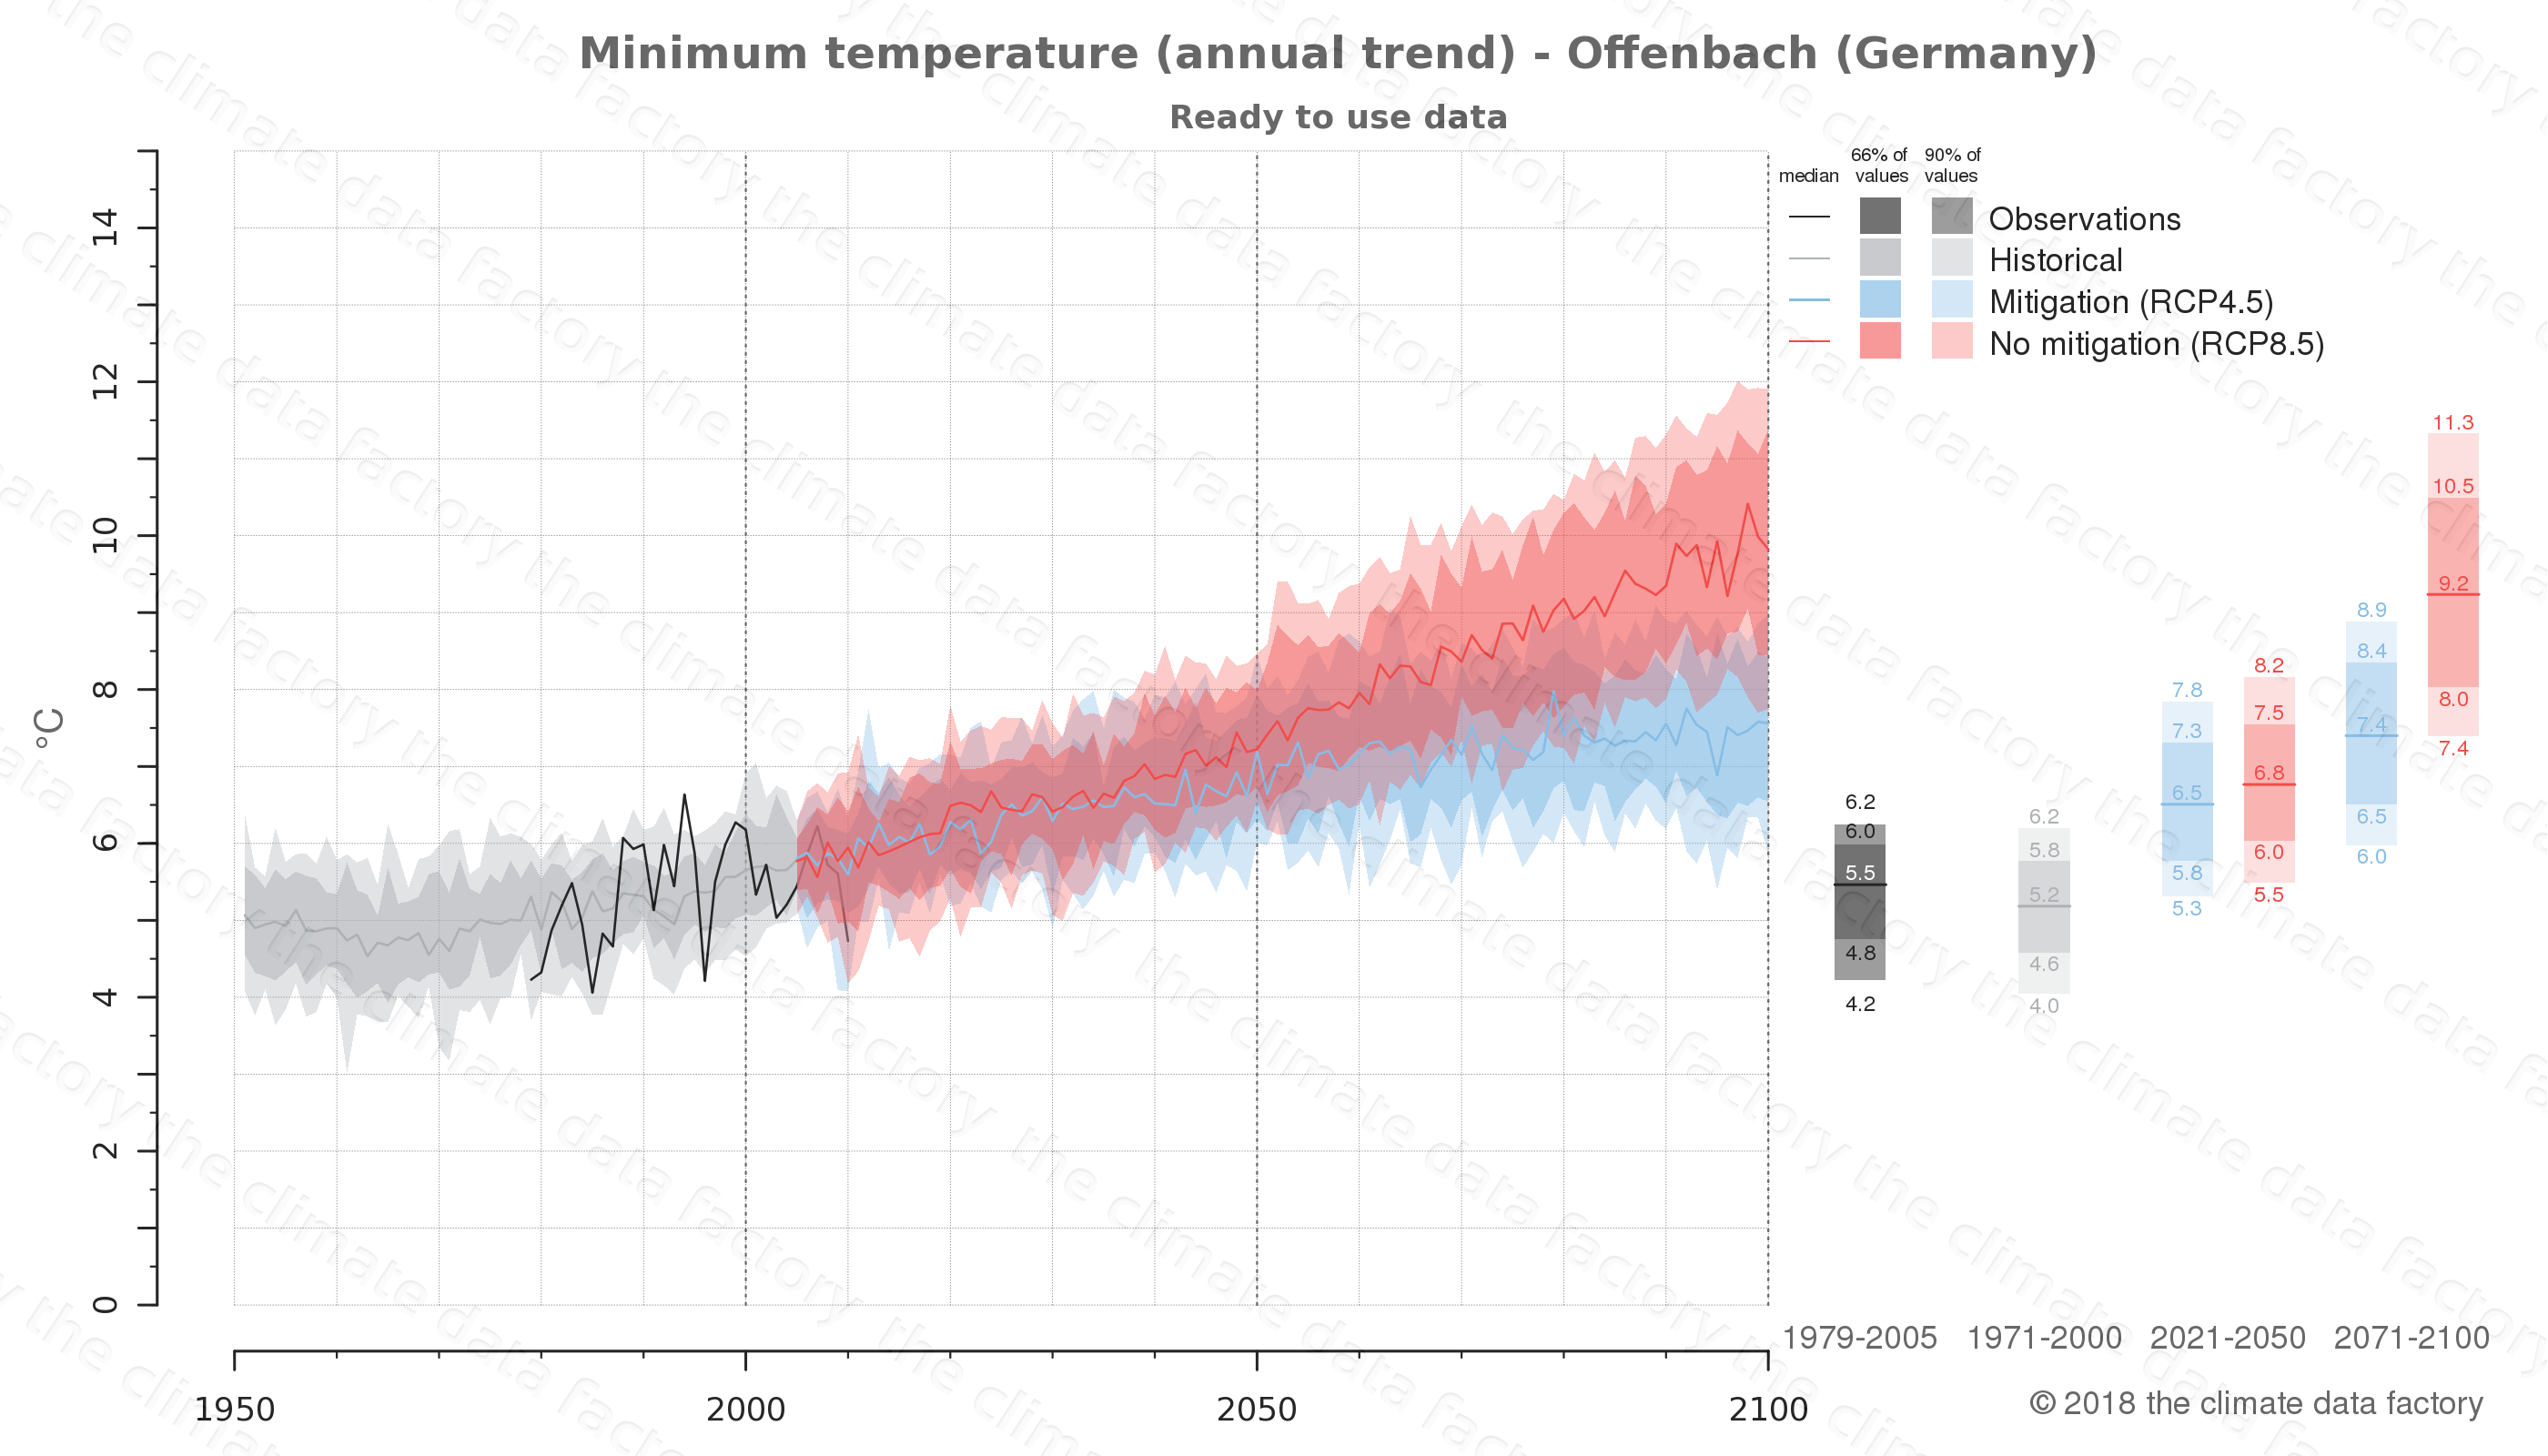 climate change data policy adaptation climate graph city data minimum-temperature offenbach germany